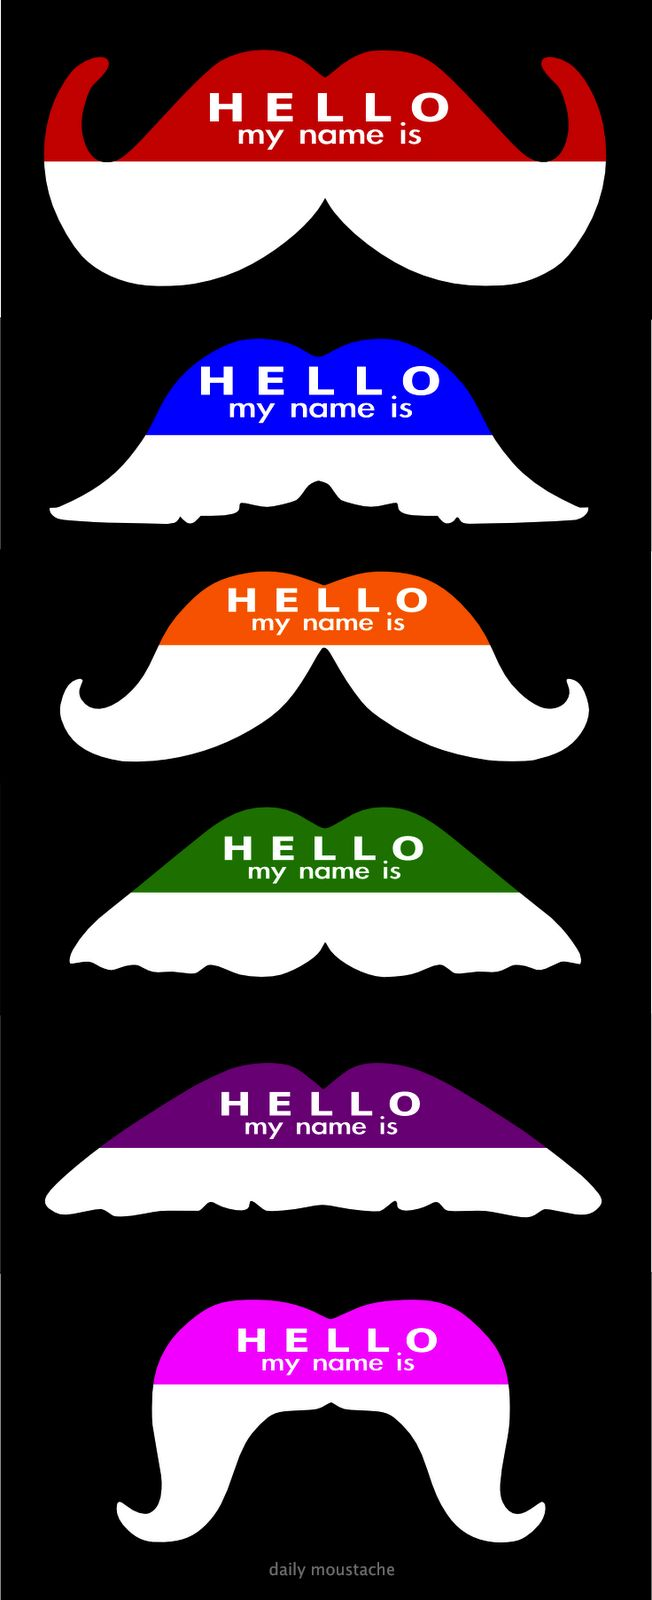 Moustache name tags!